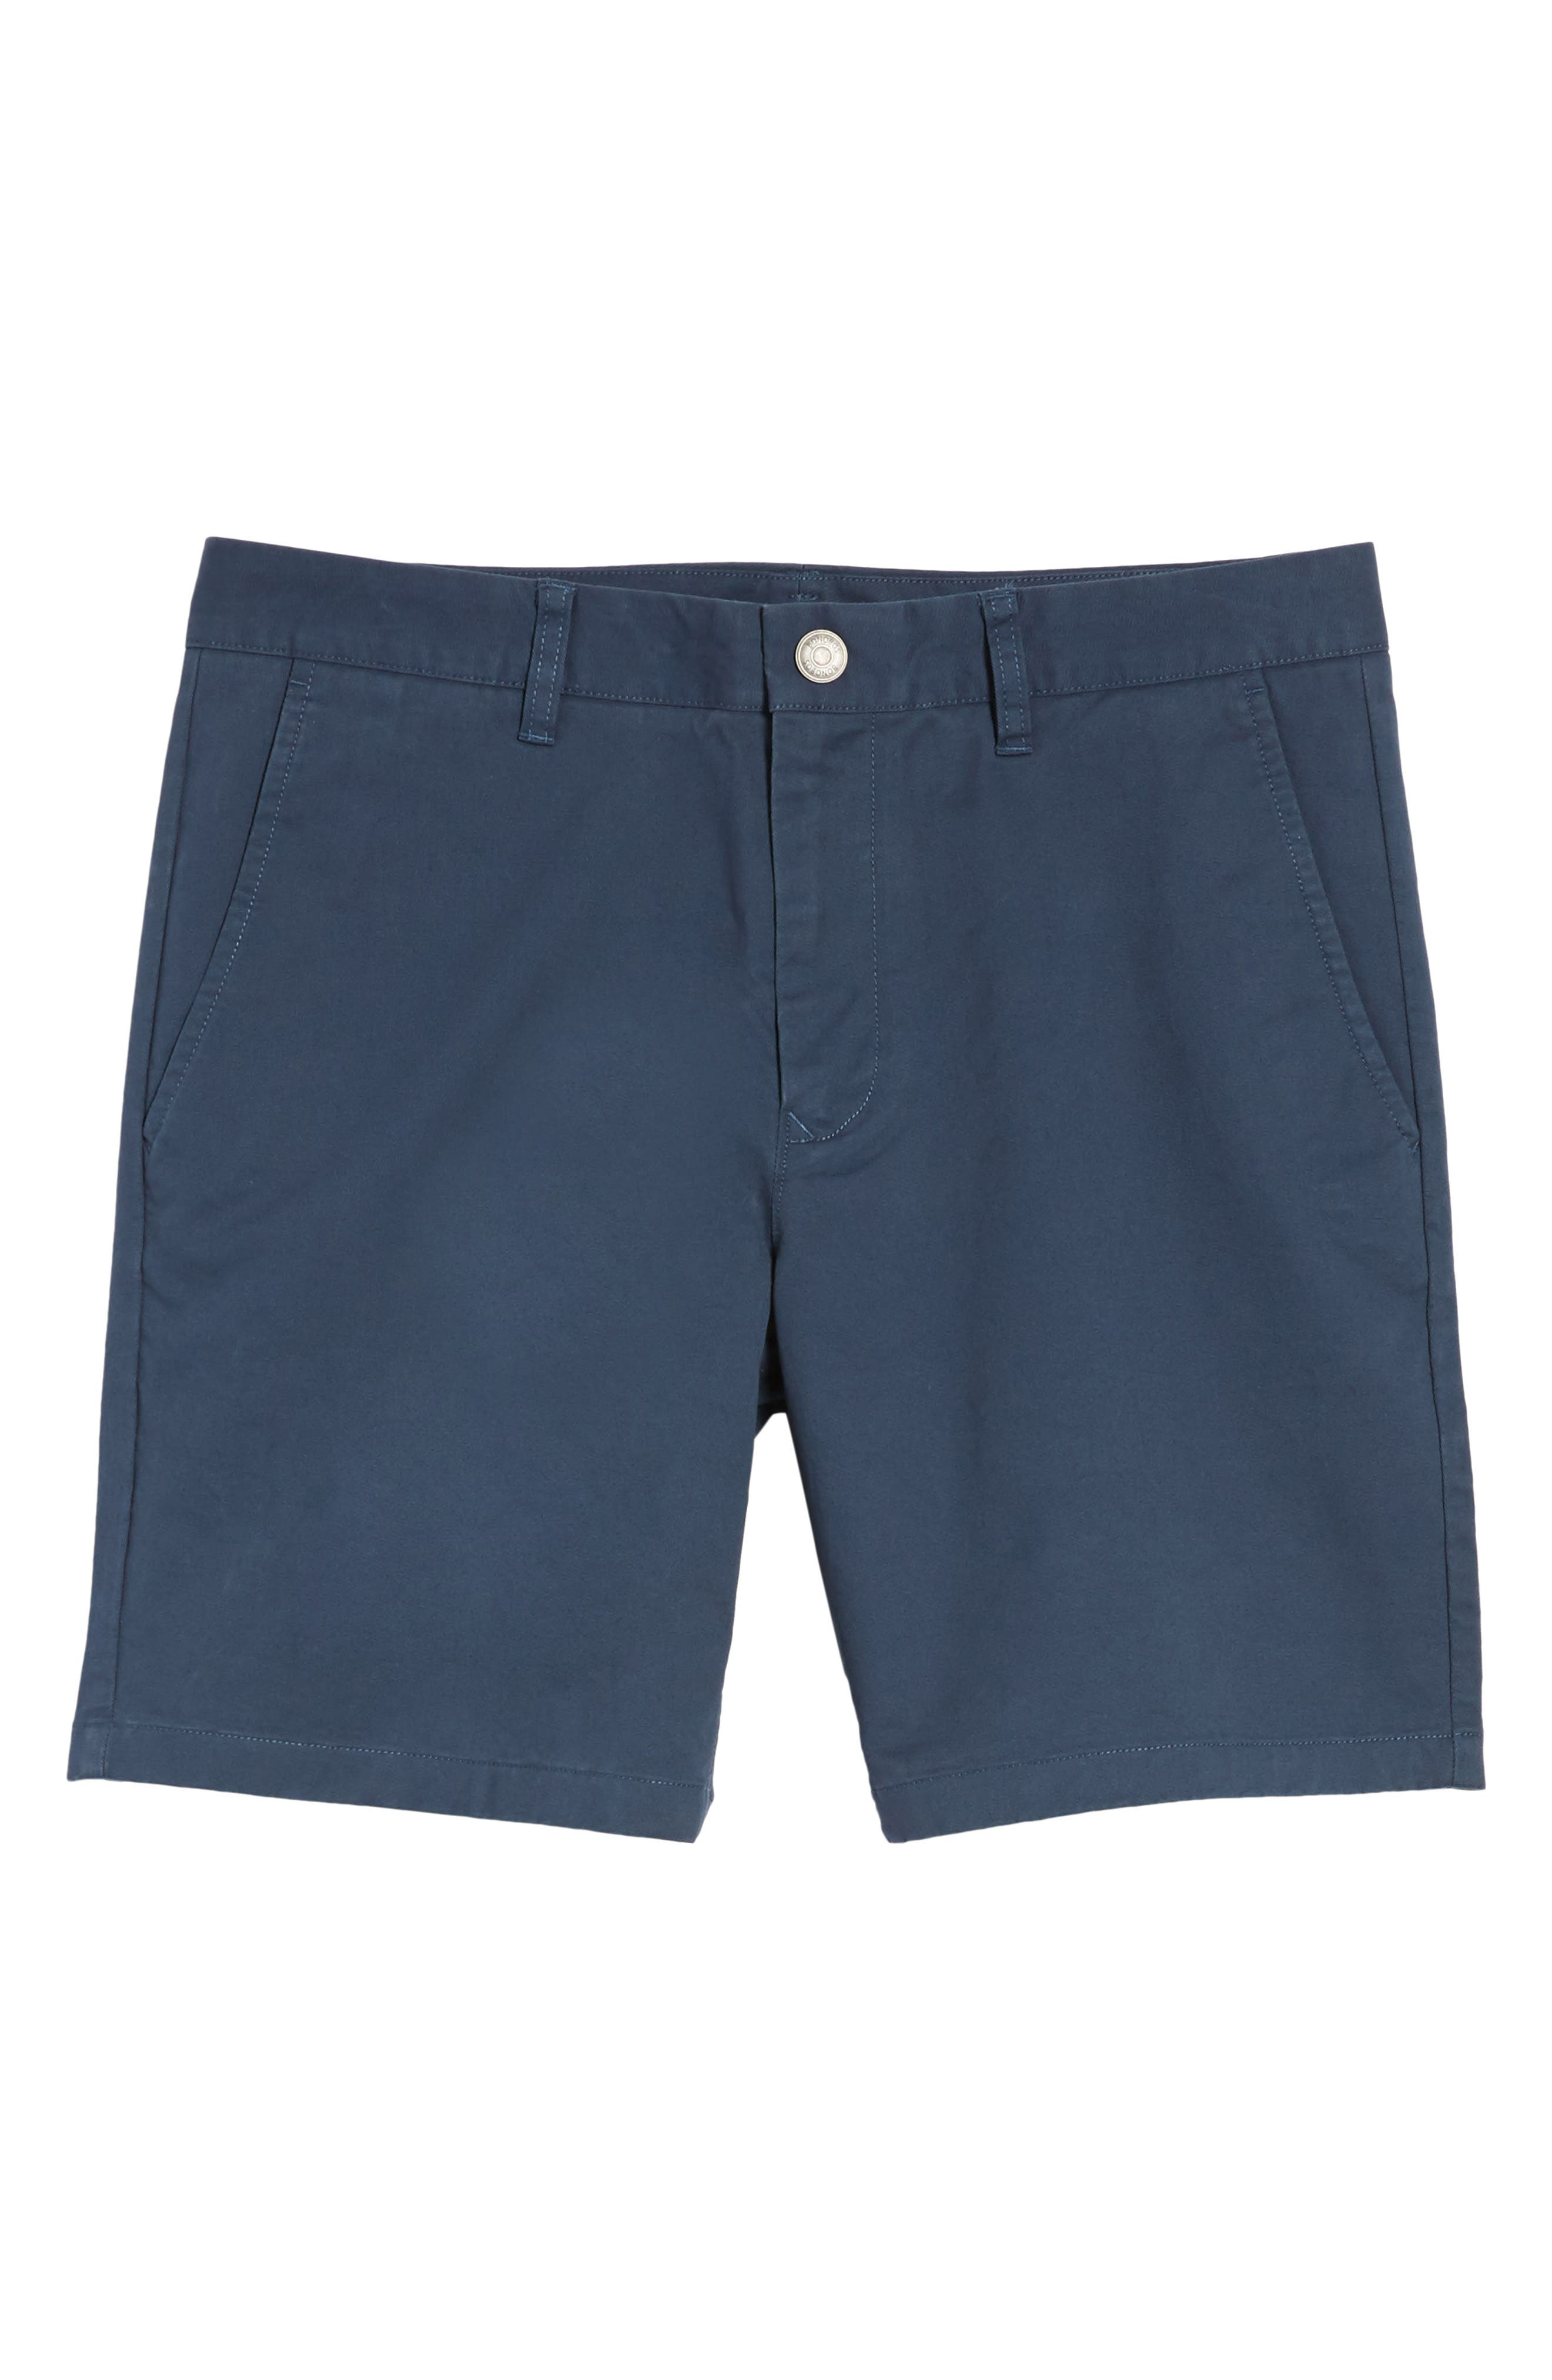 Stretch Washed Chino 7-Inch Shorts,                             Alternate thumbnail 116, color,